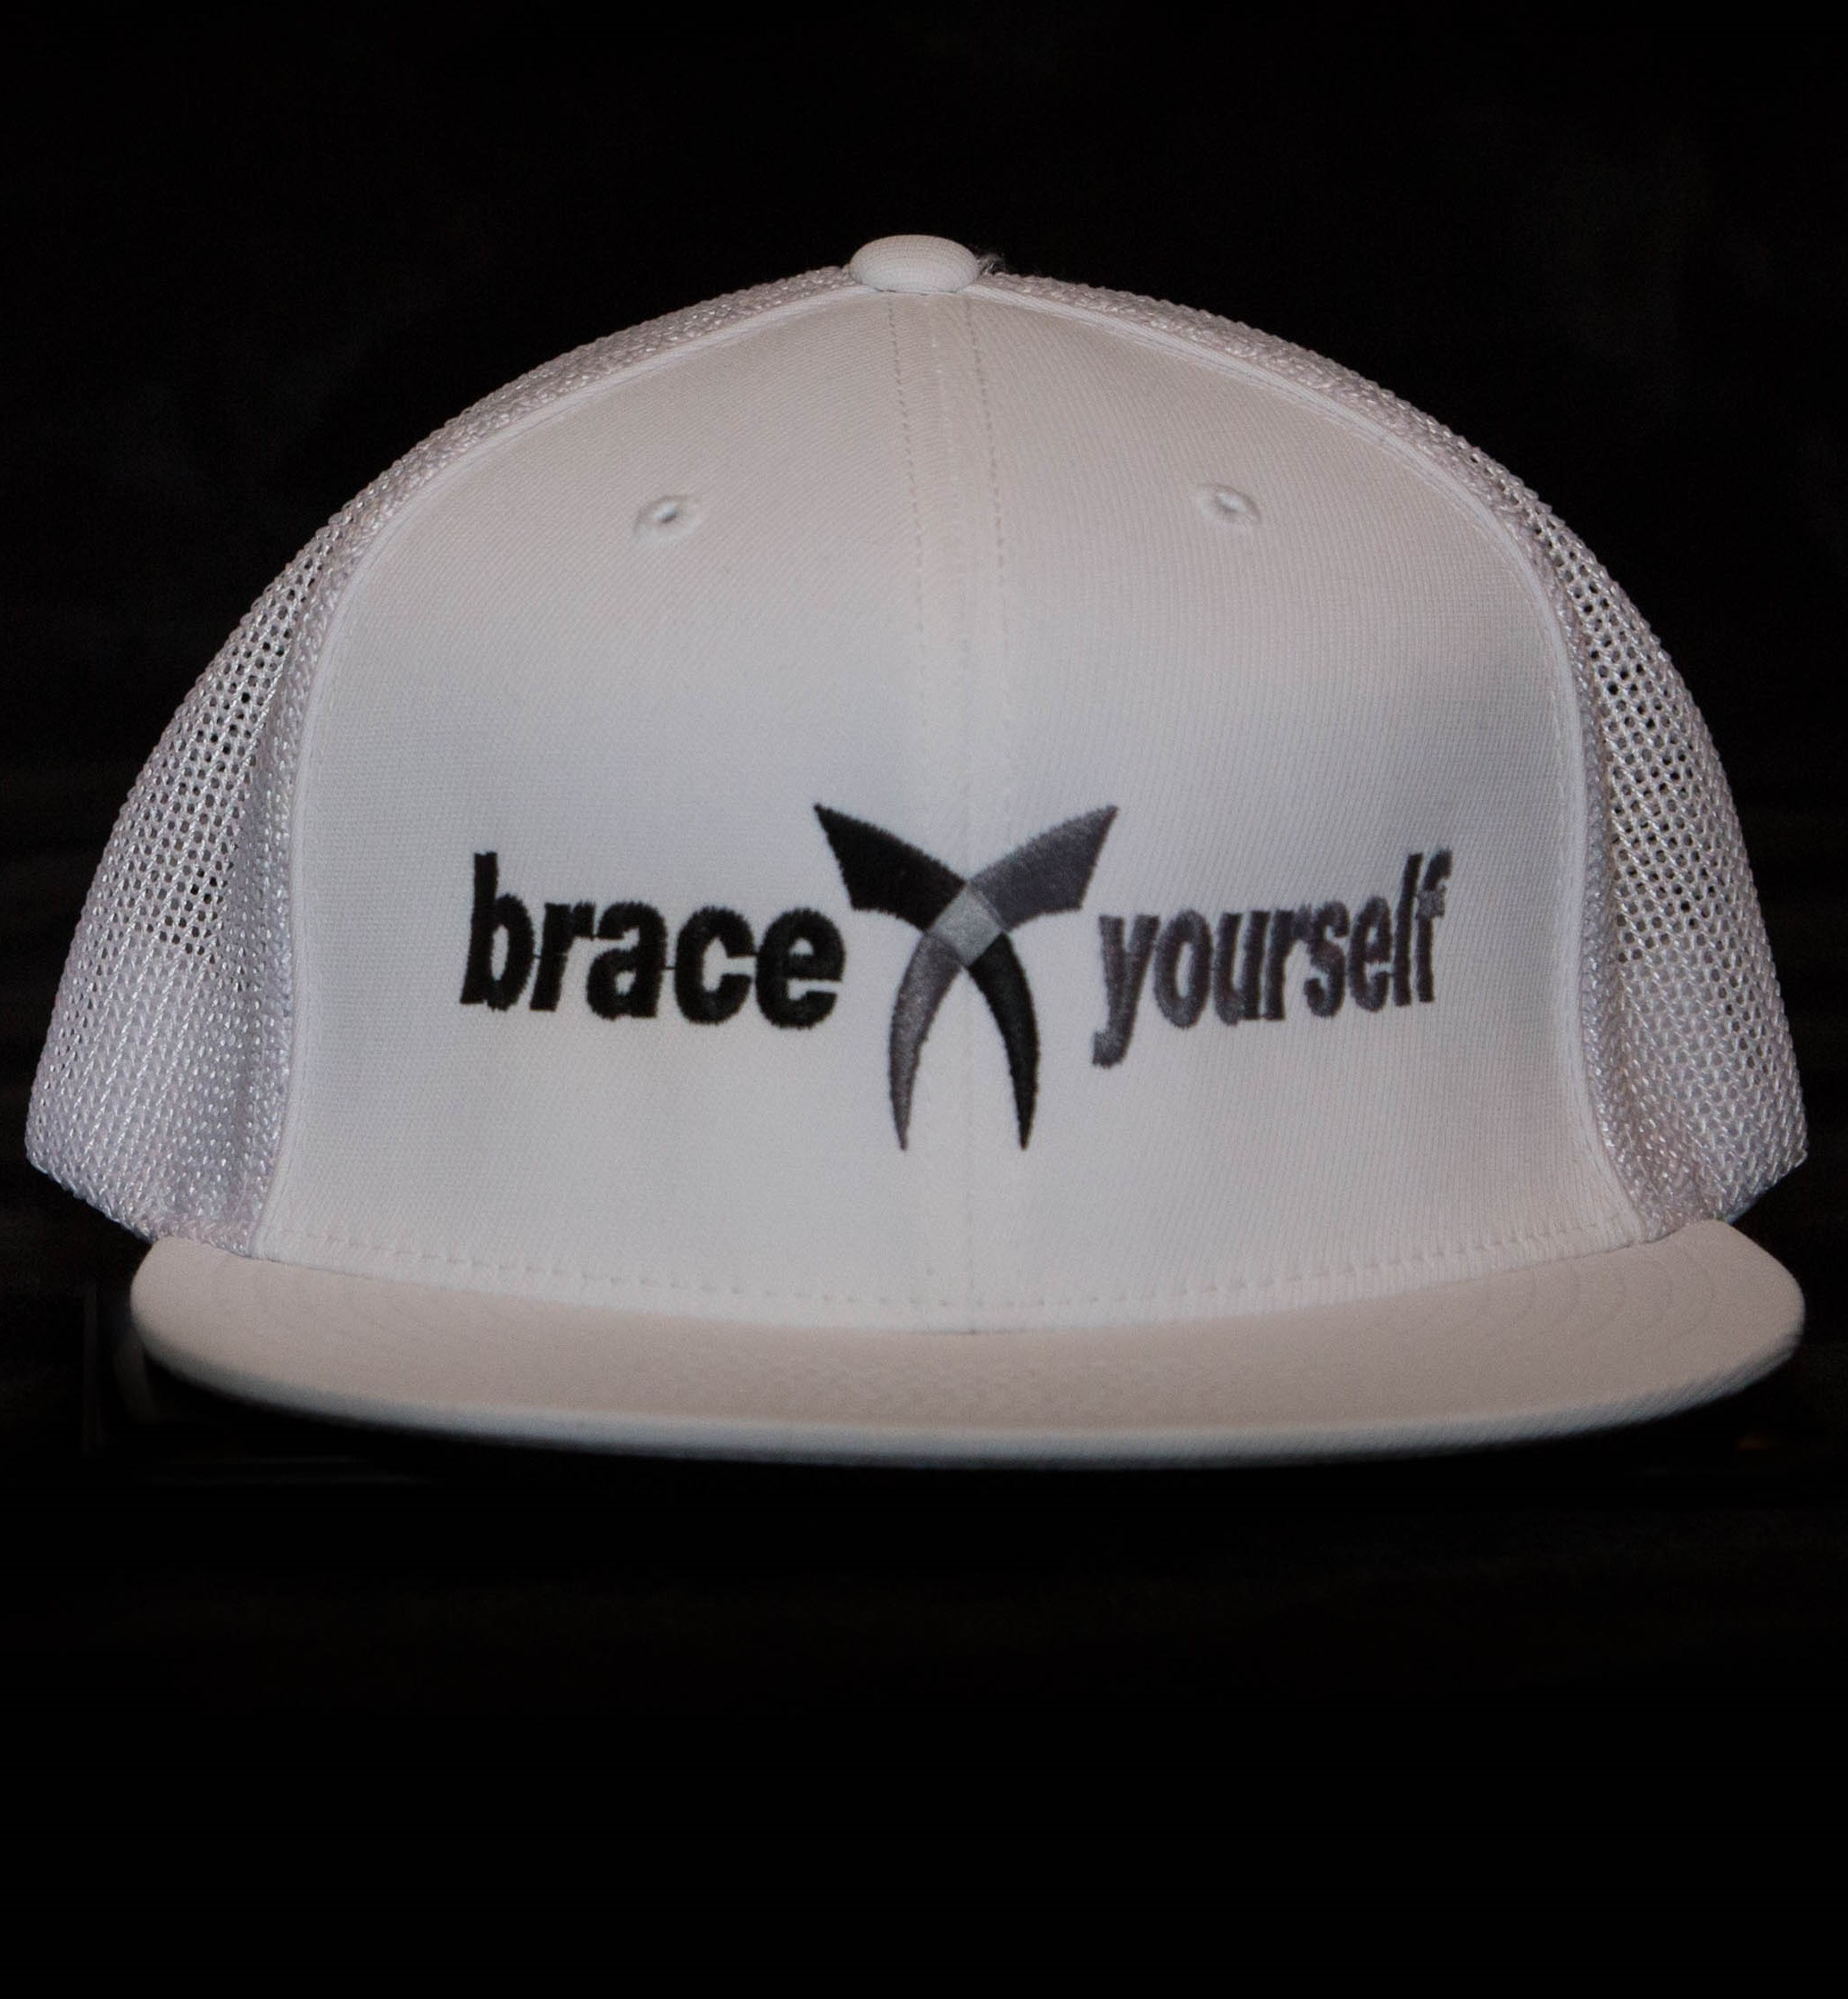 BRACE YOURSELF HAT - WHITE 00020